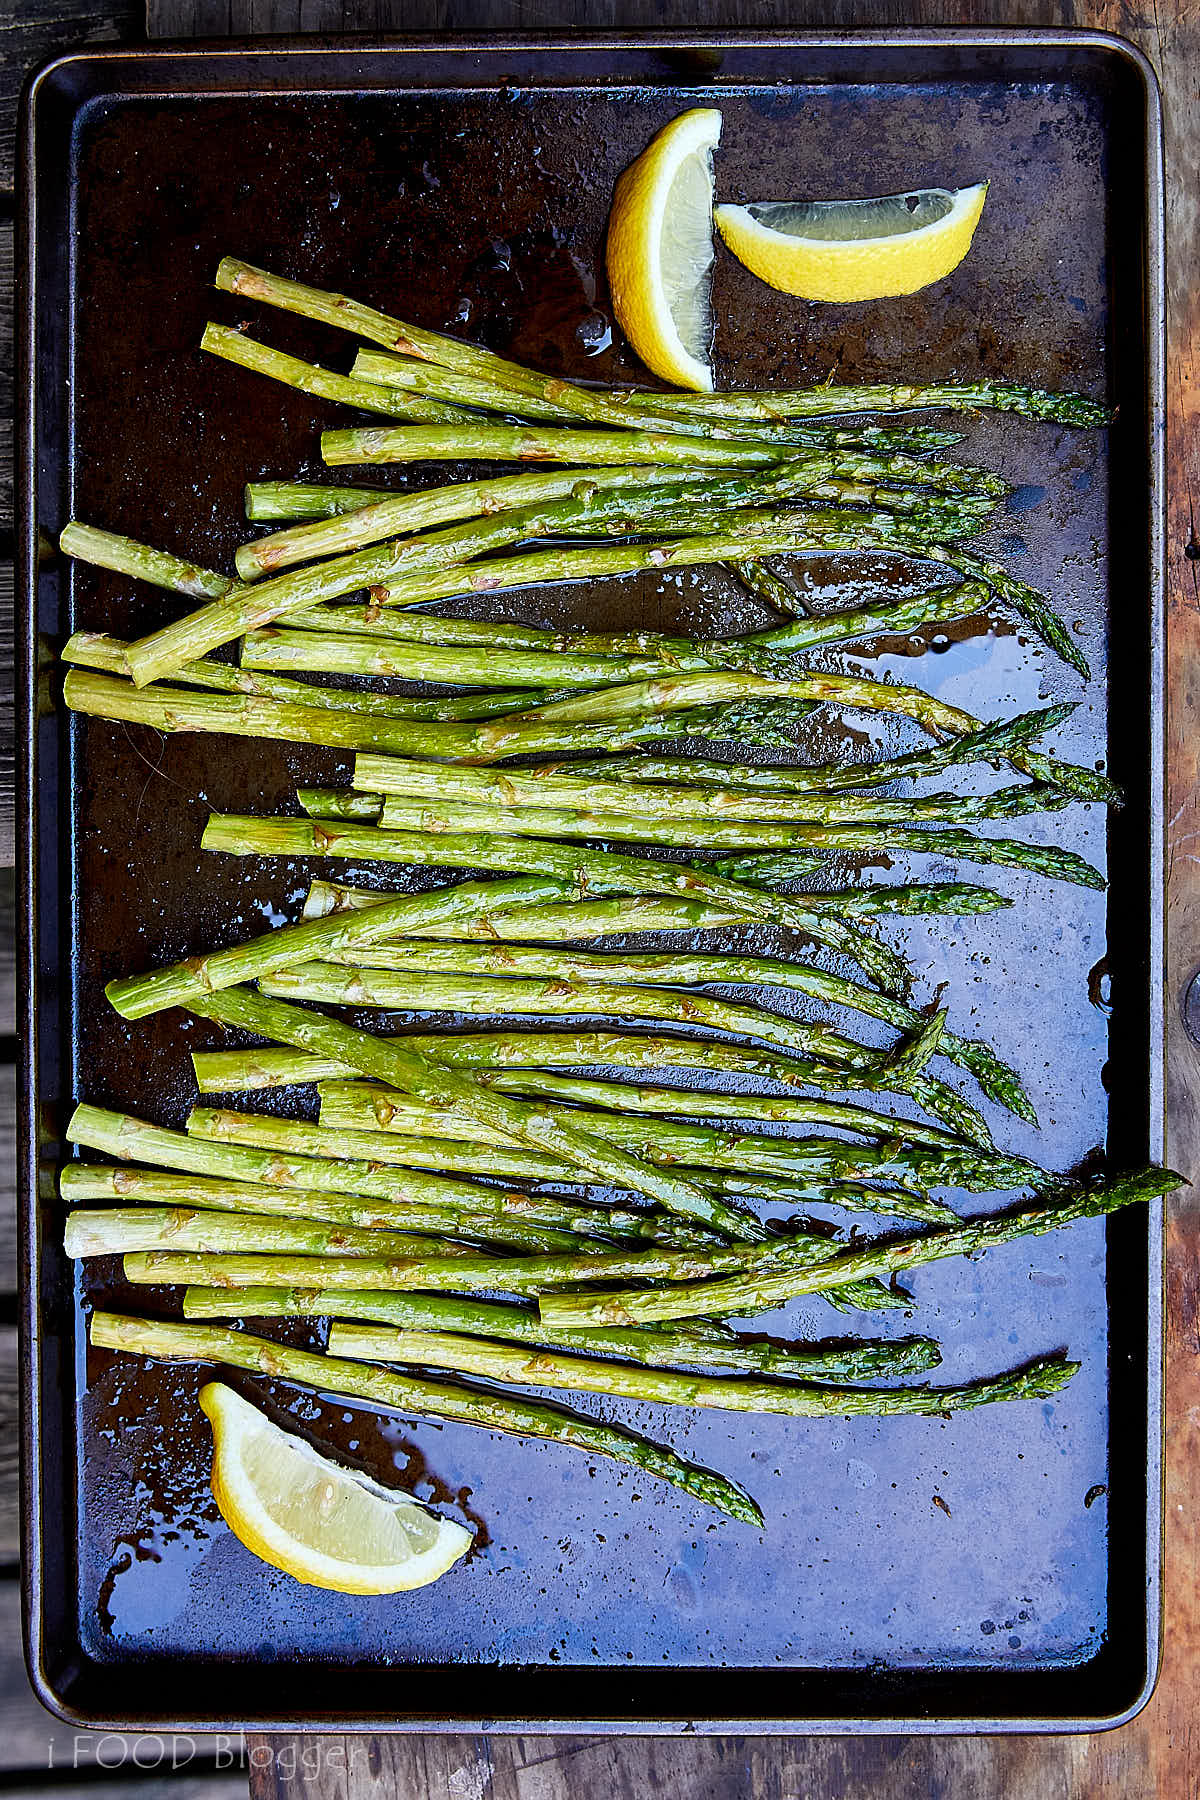 Broiled asparagus, tenderized with a quick parboil, seasoned with lemon juice, salt and pepper, and garnished with Parmigiano Reggiano cheese. | ifoodblogger.com